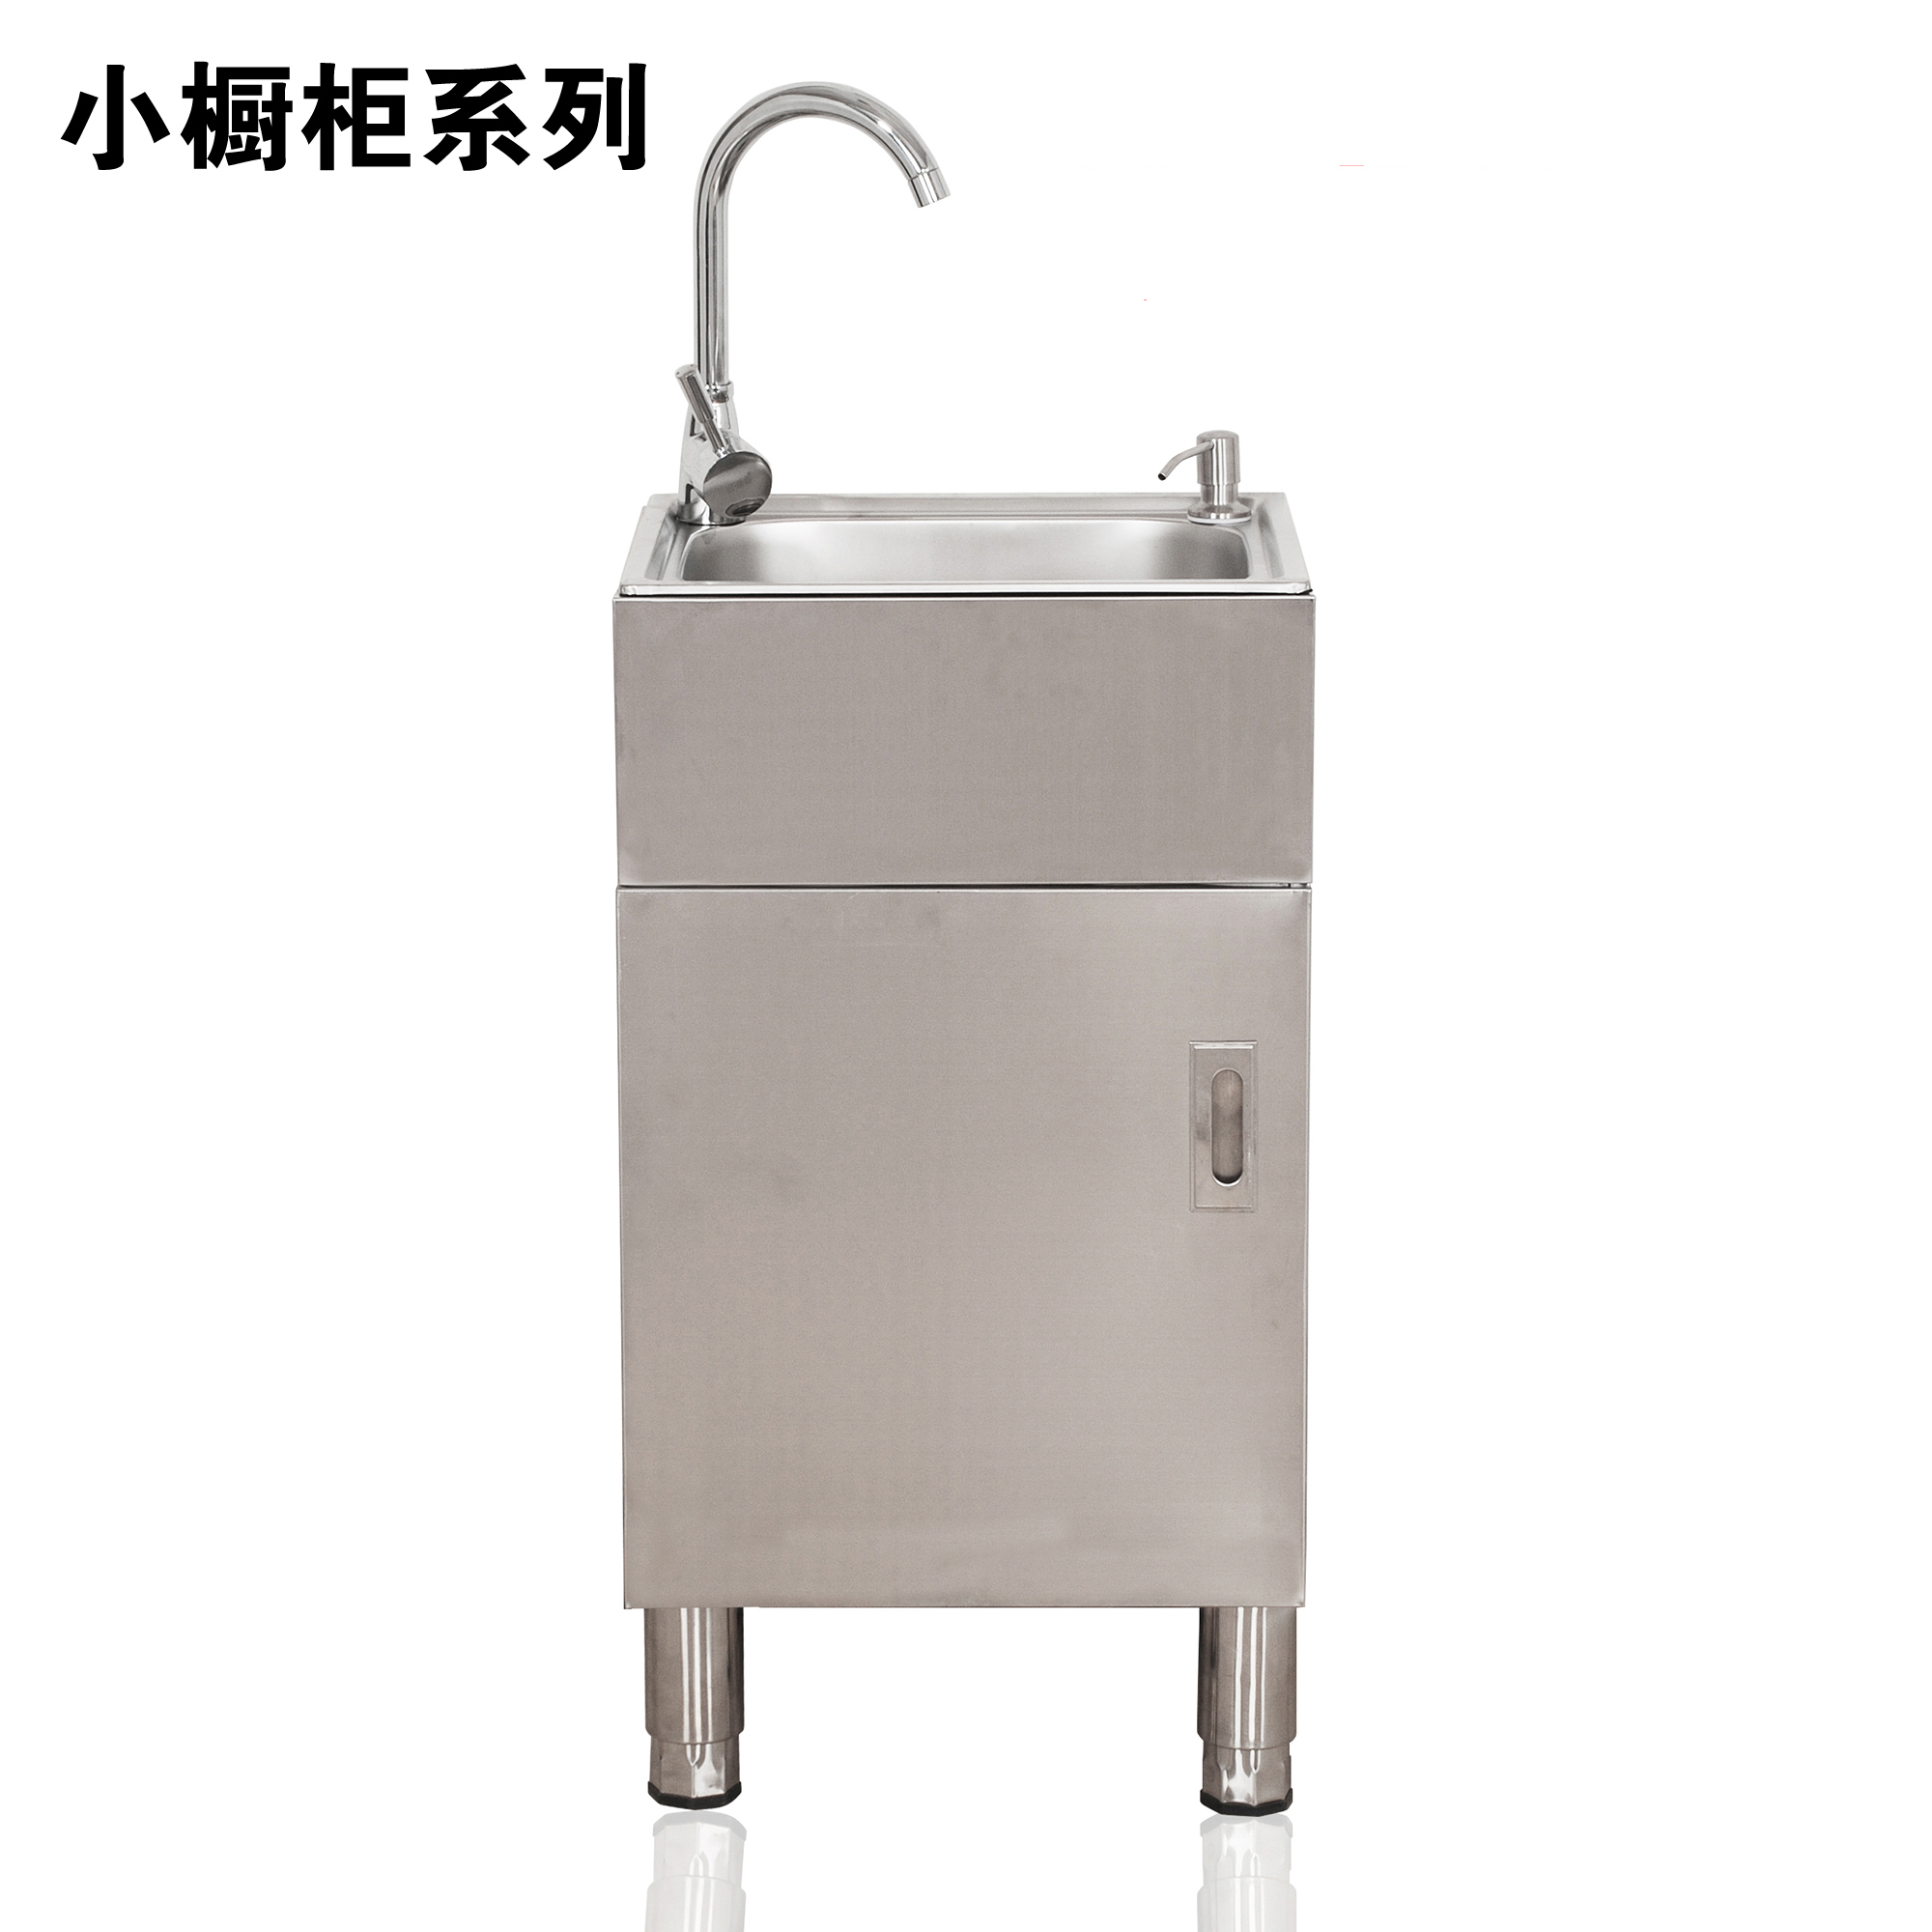 Usd 158 25 New Stainless Steel Cabinet Sink Cabinet Kitchen Storage Side Cabinet Stainless Steel Sink Cabinet Small Cabinet Wholesale From China Online Shopping Buy Asian Products Online From The Best